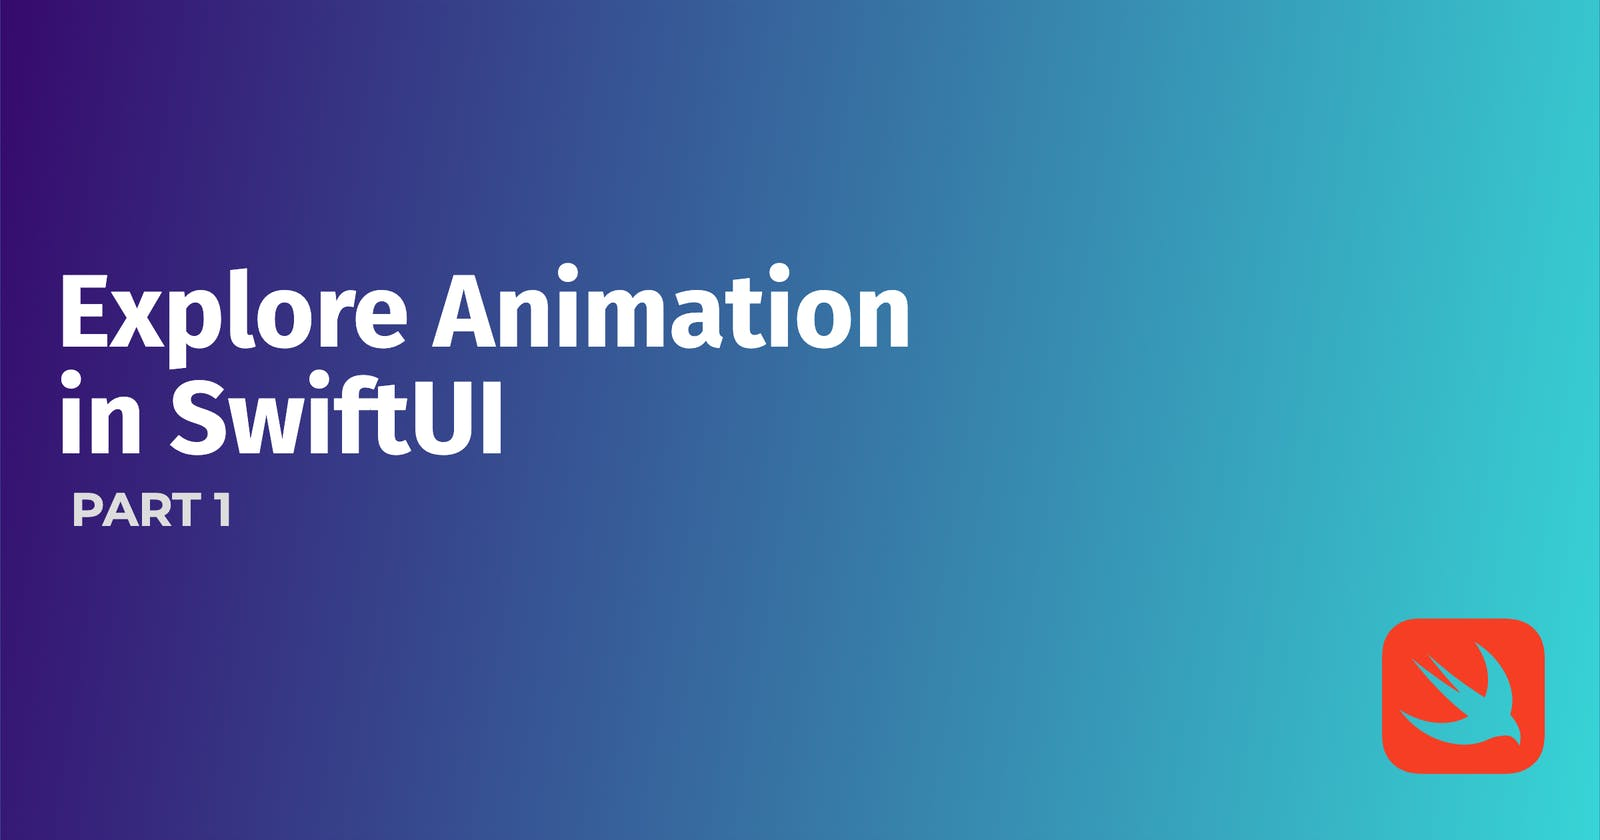 Explore Animation in SwiftUI - PART 1